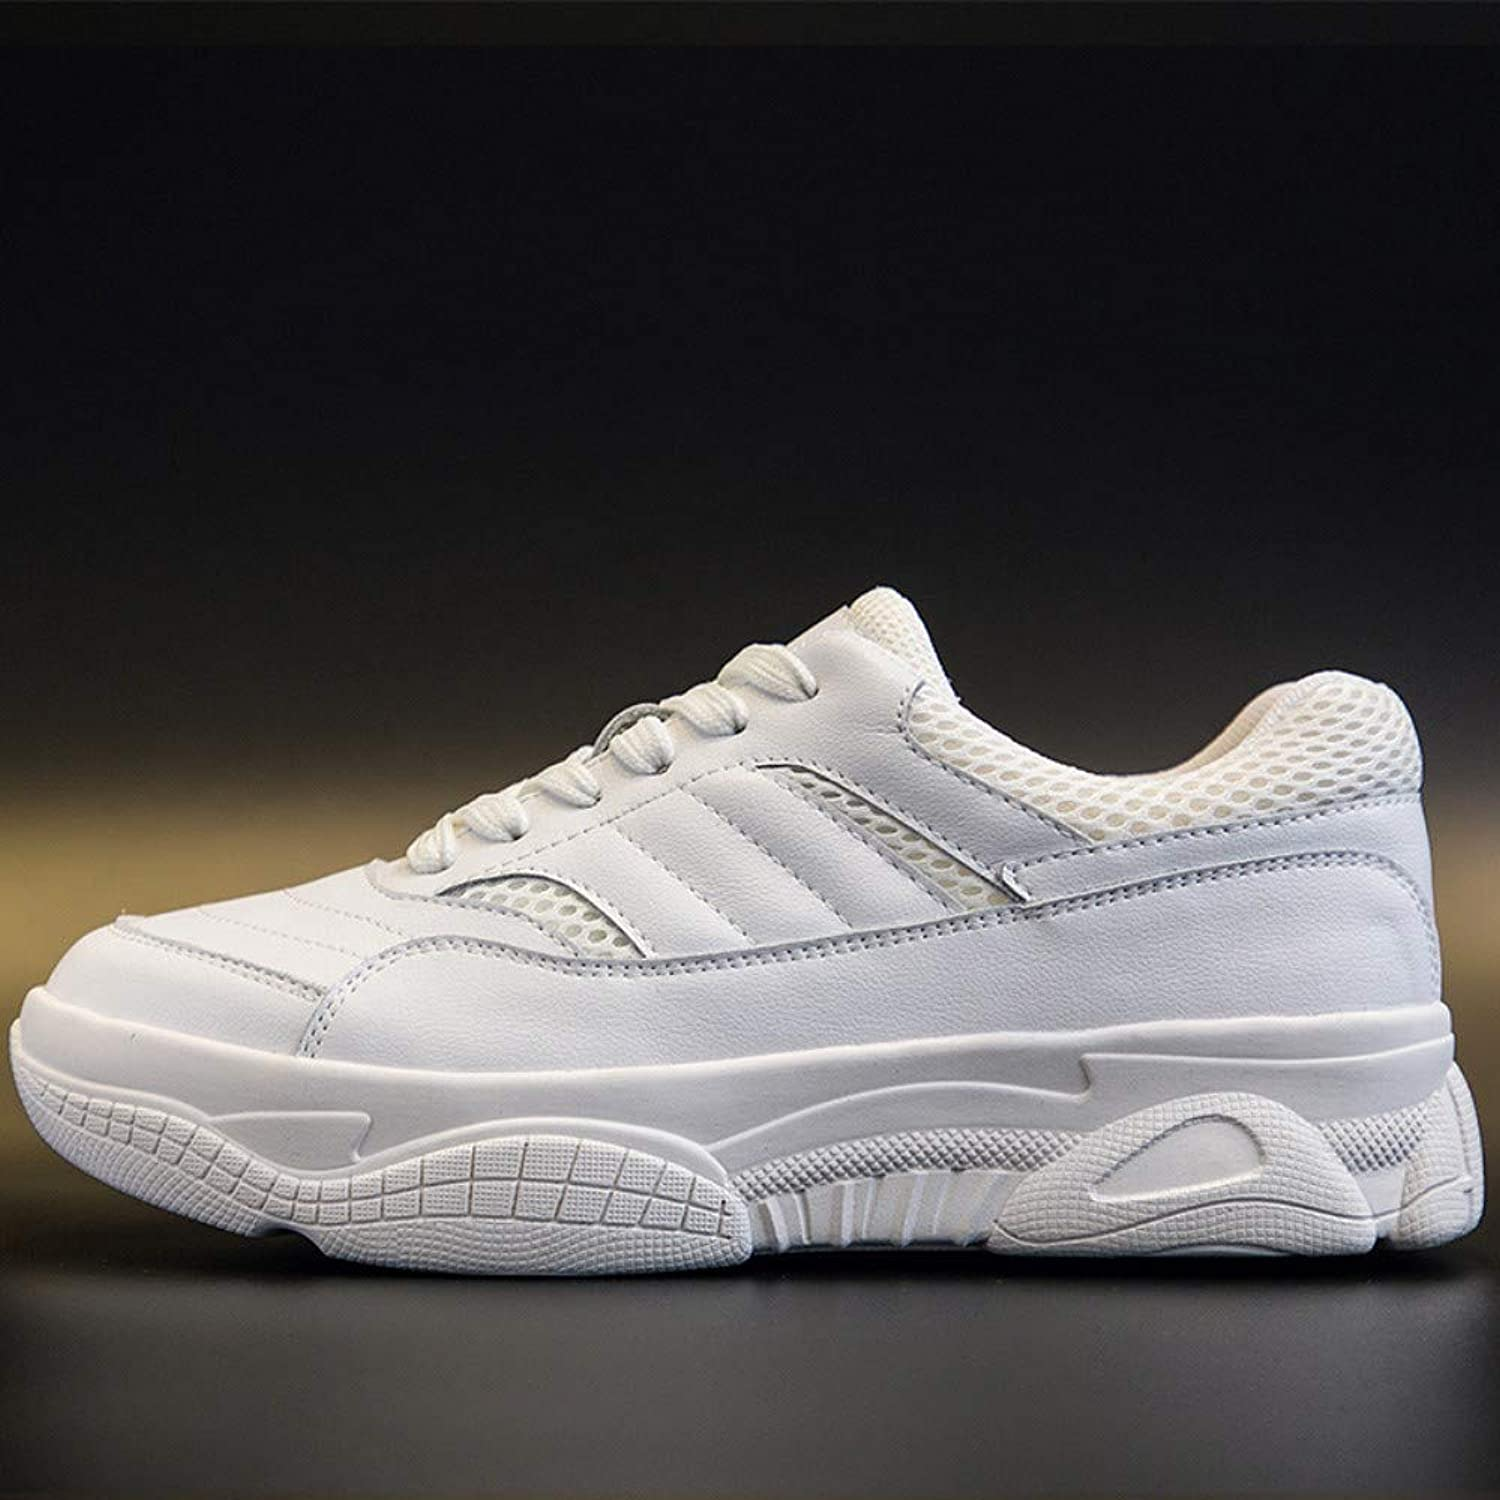 ZHIJINLI Small white shoes, versatile casual shoes, sports shoes, thick and light, wearable, 7 SIZE